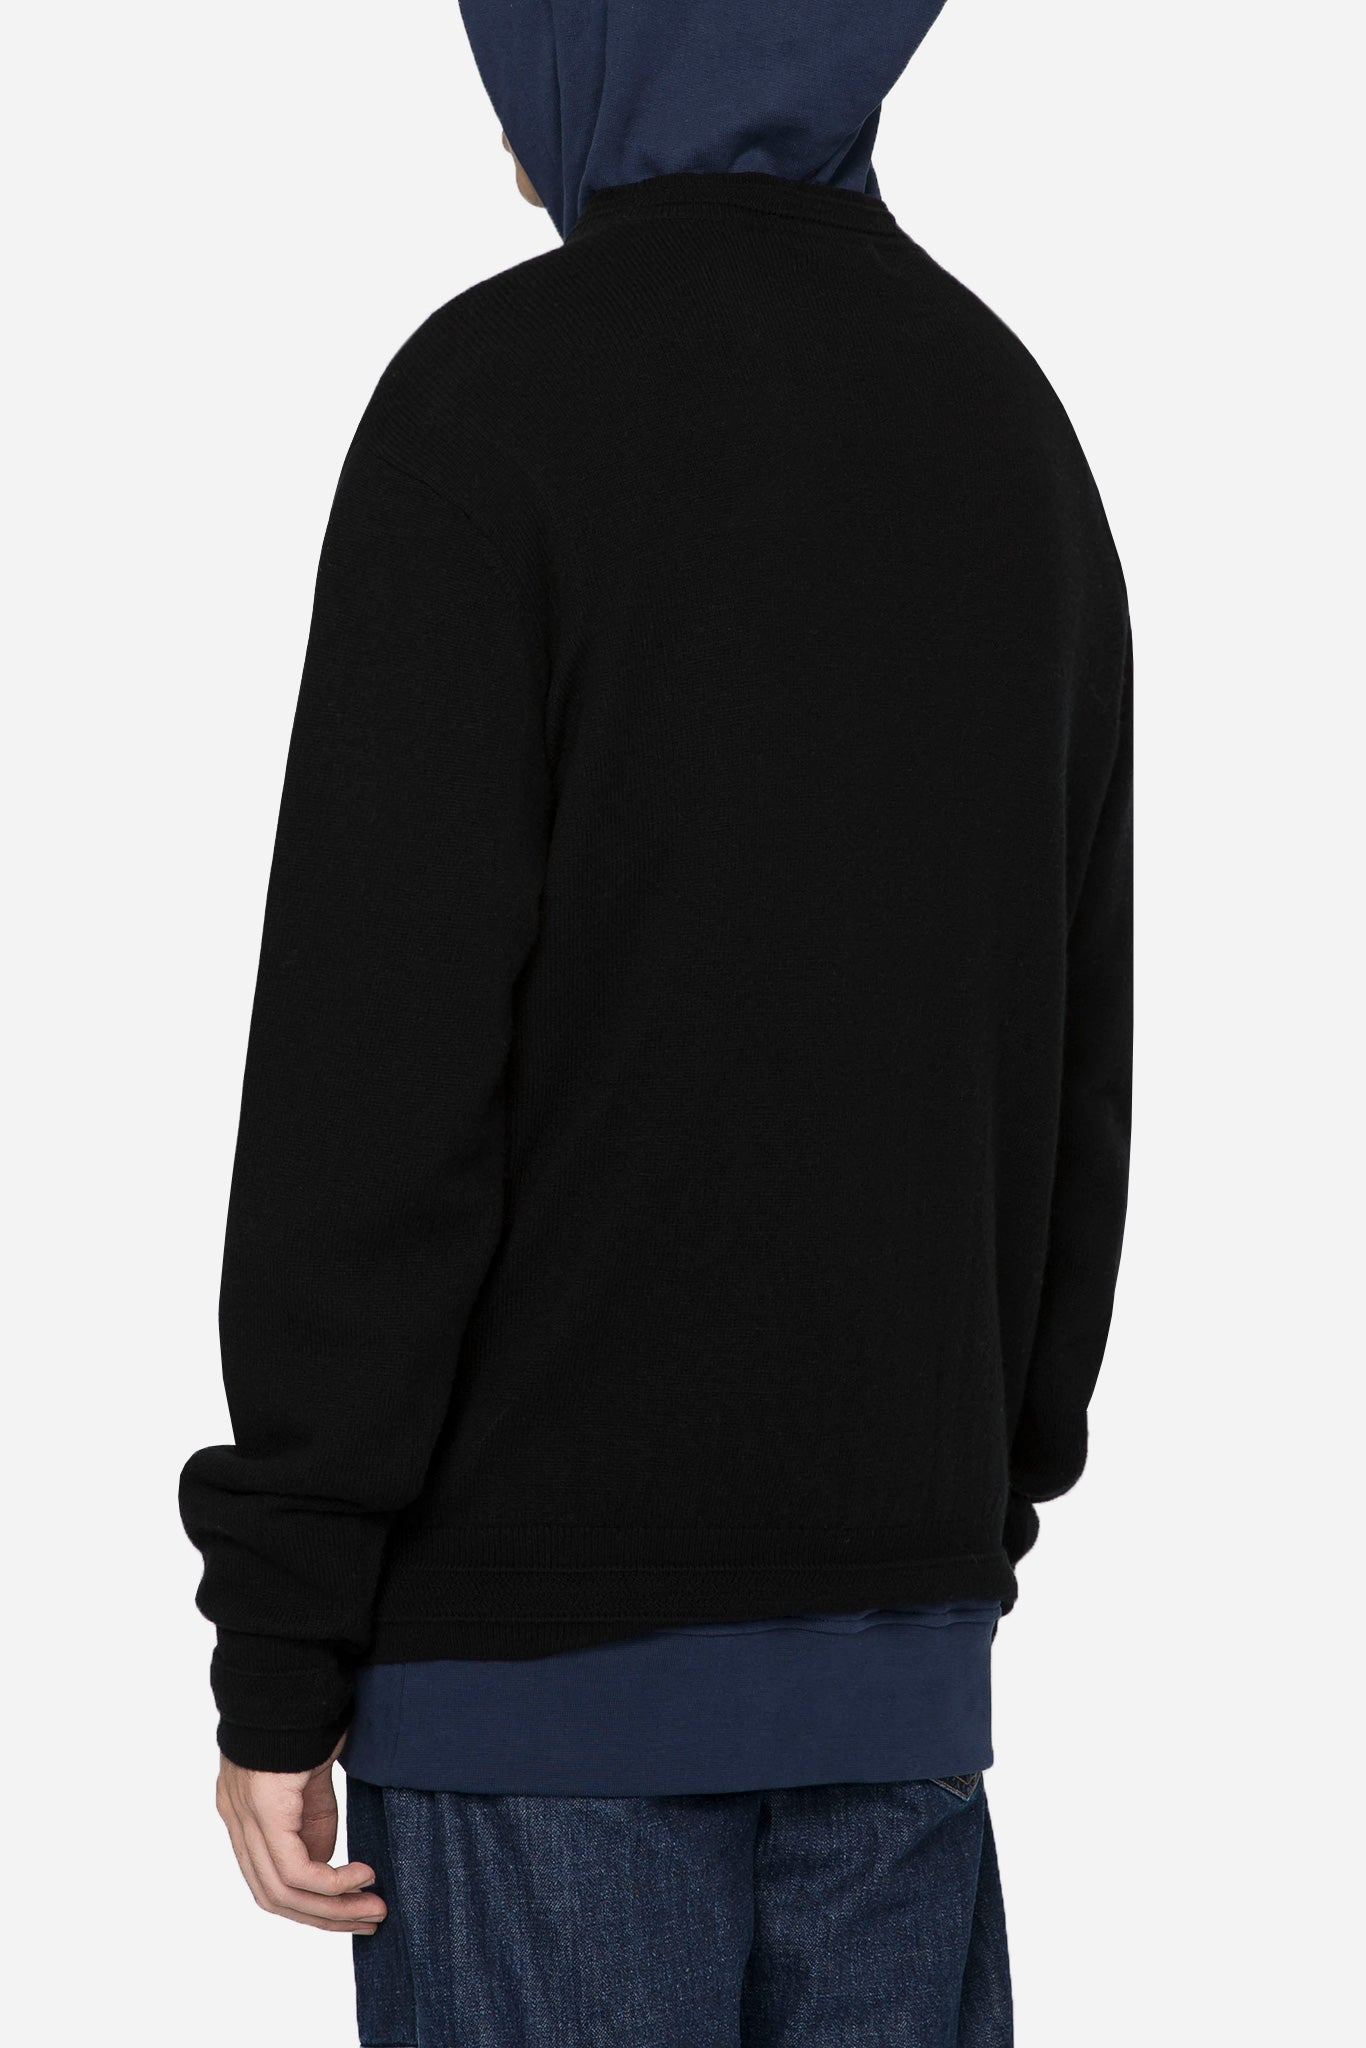 Brain Washed Knit Crew Black